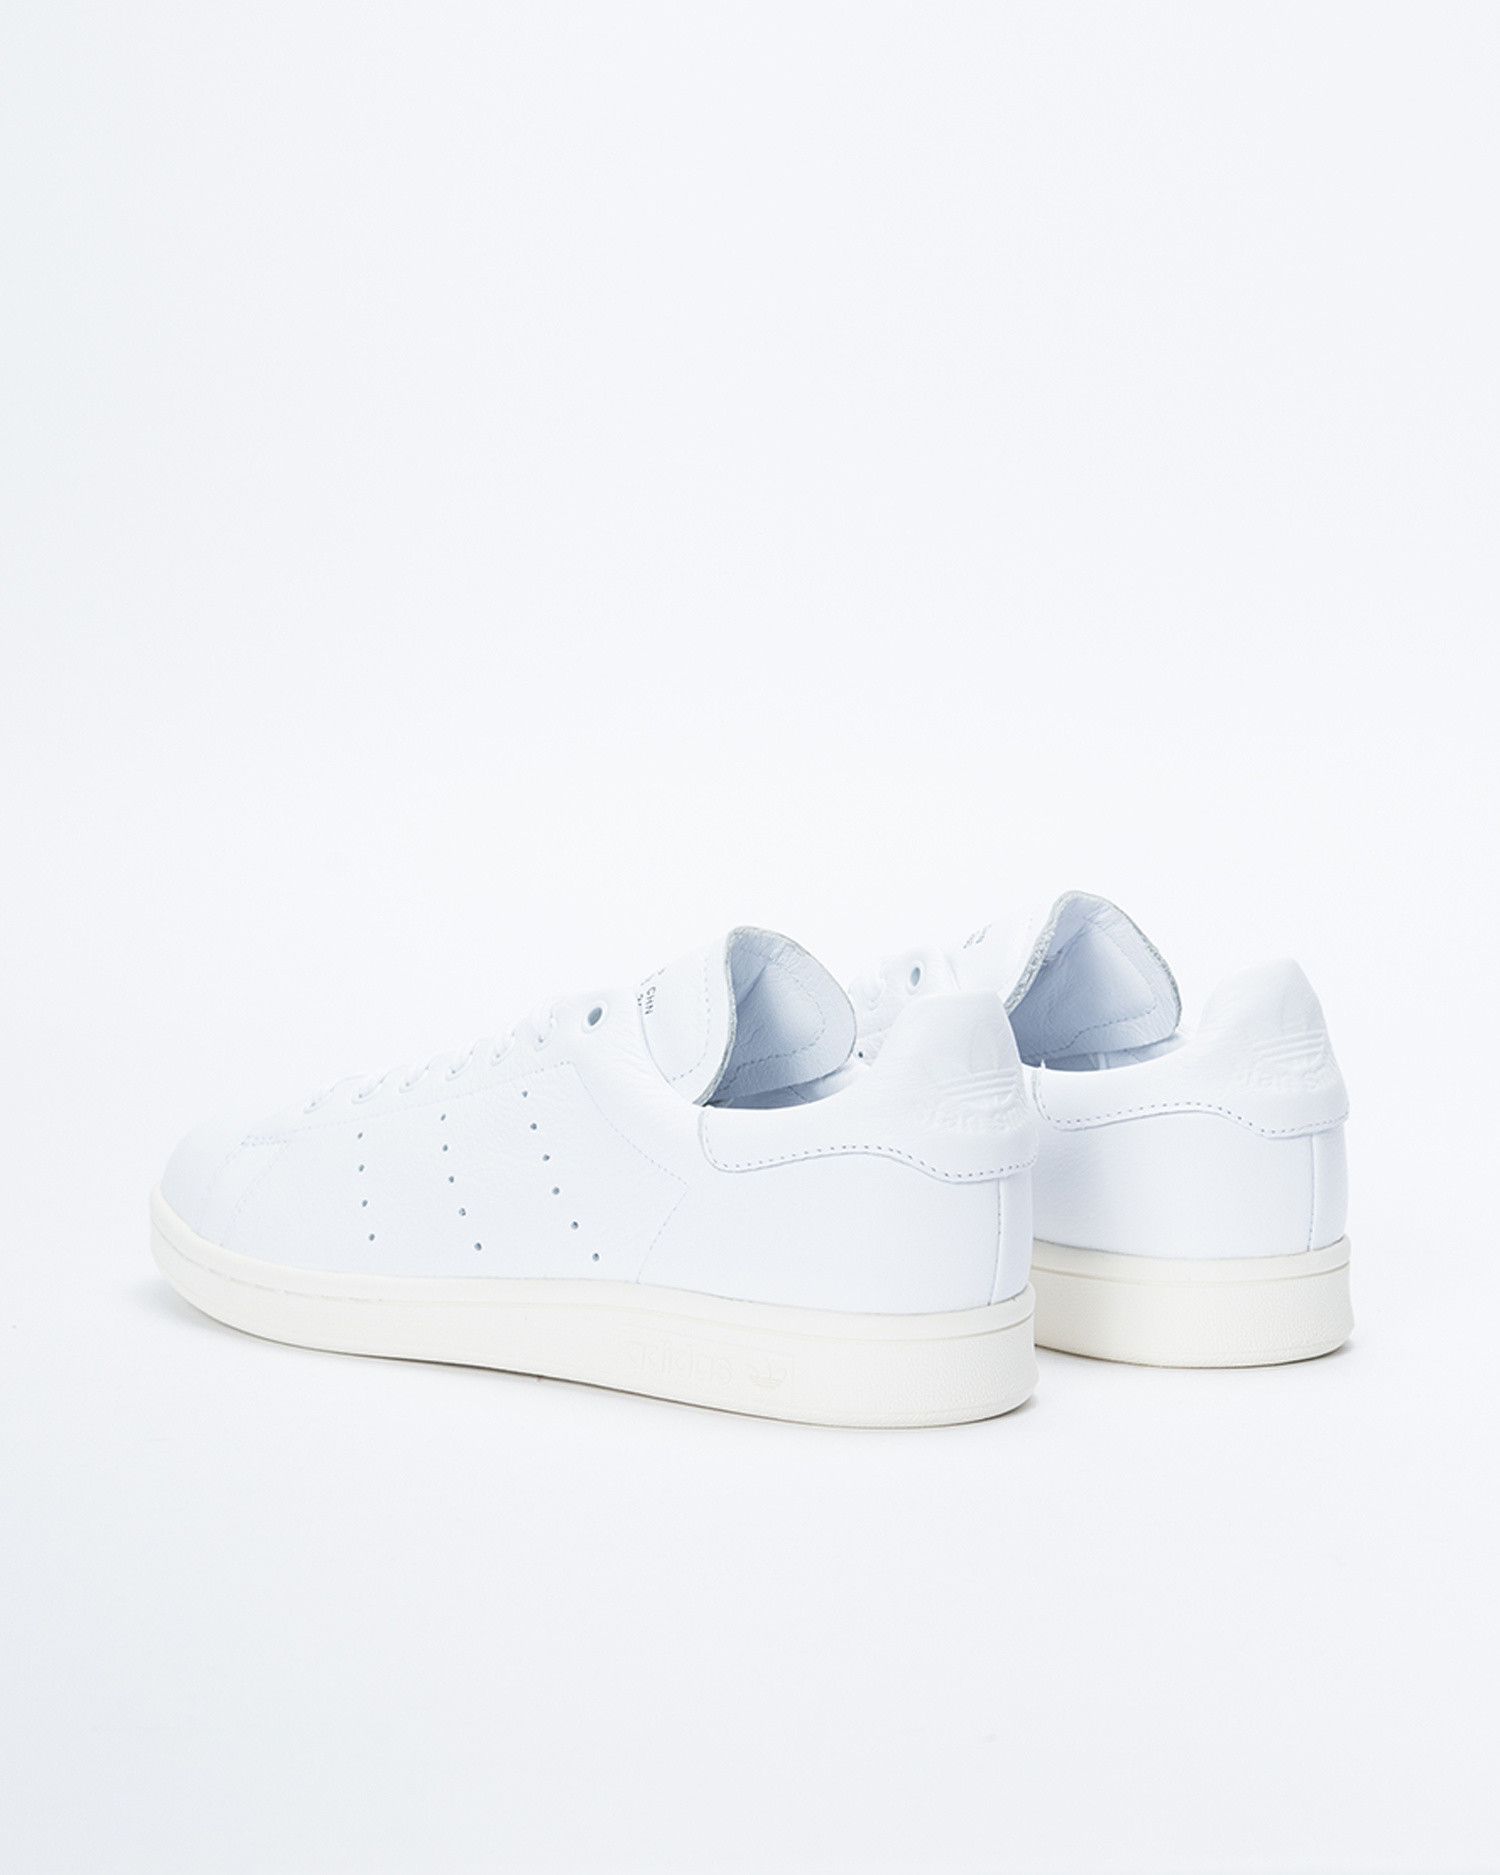 Adidas Stan Smith Recon Ftwwht/Ftwwht/Owhite